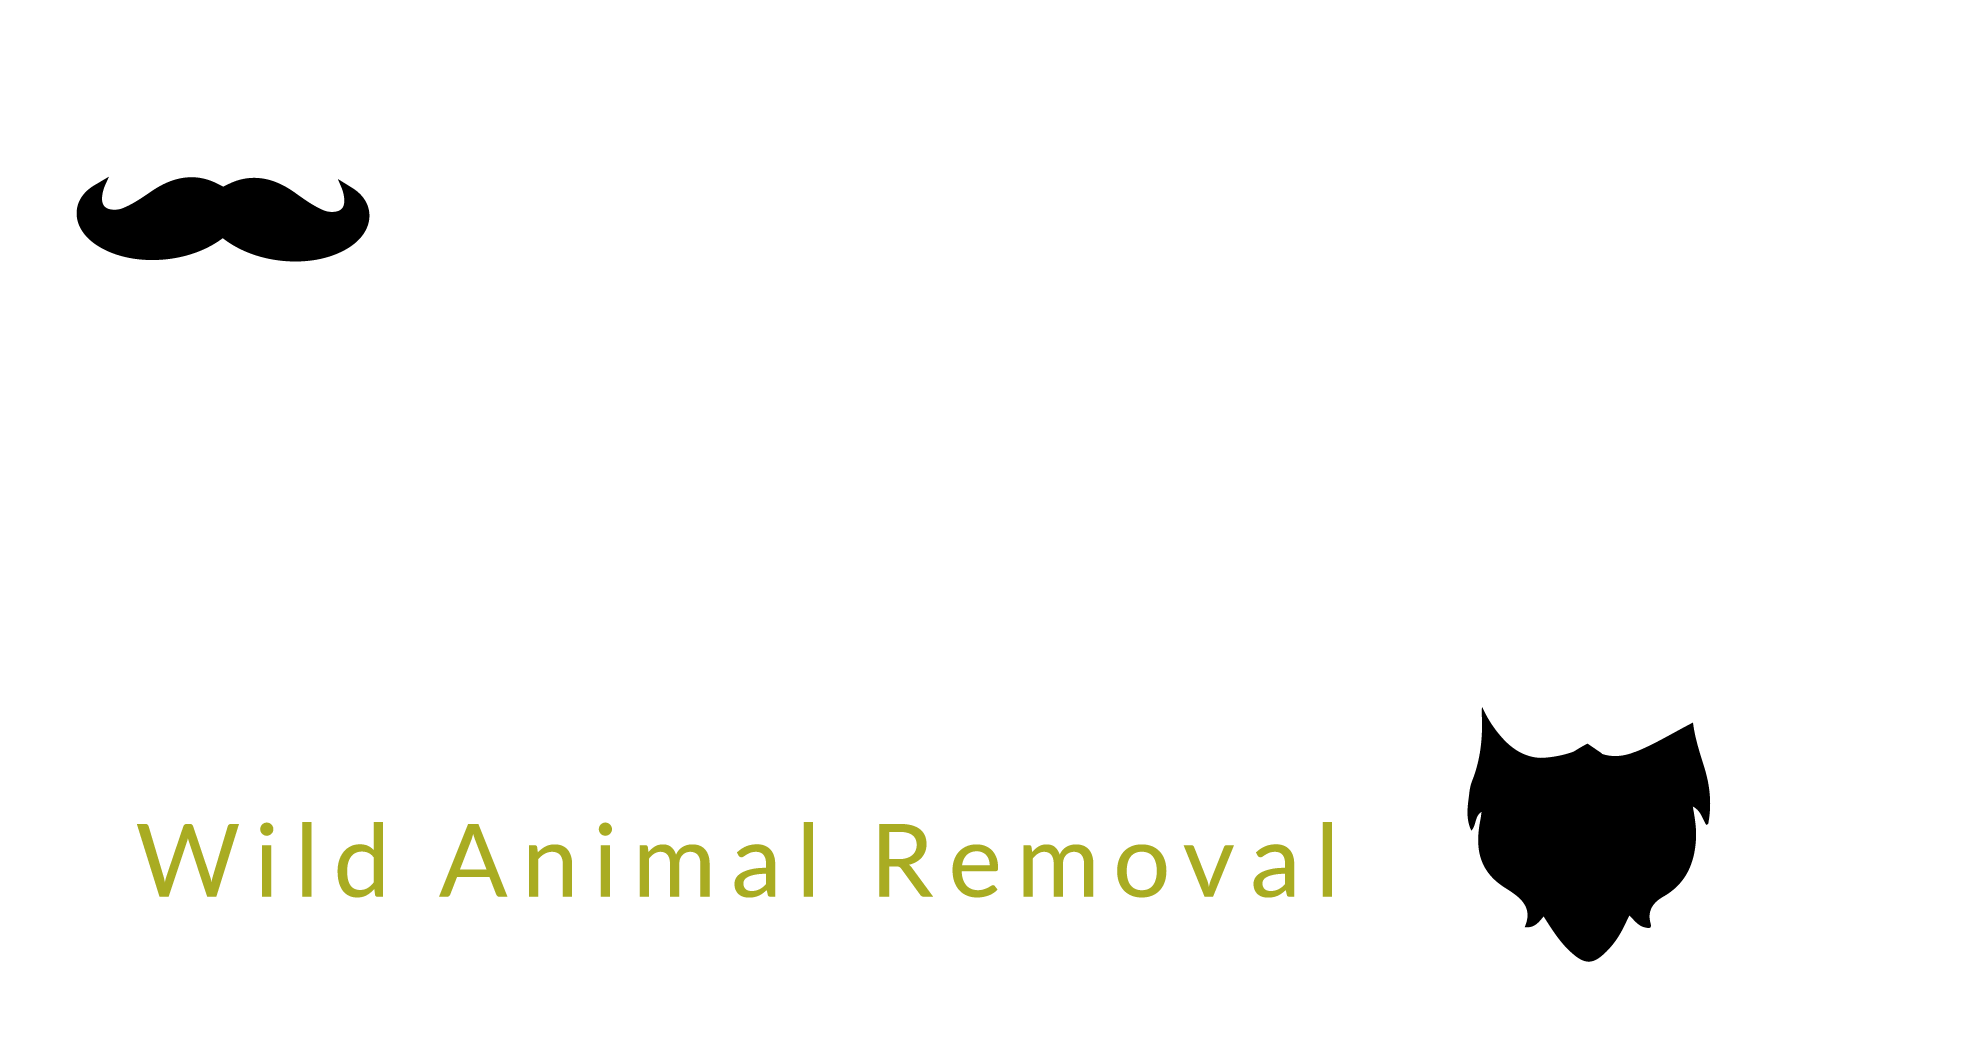 The Bearded Huntsman